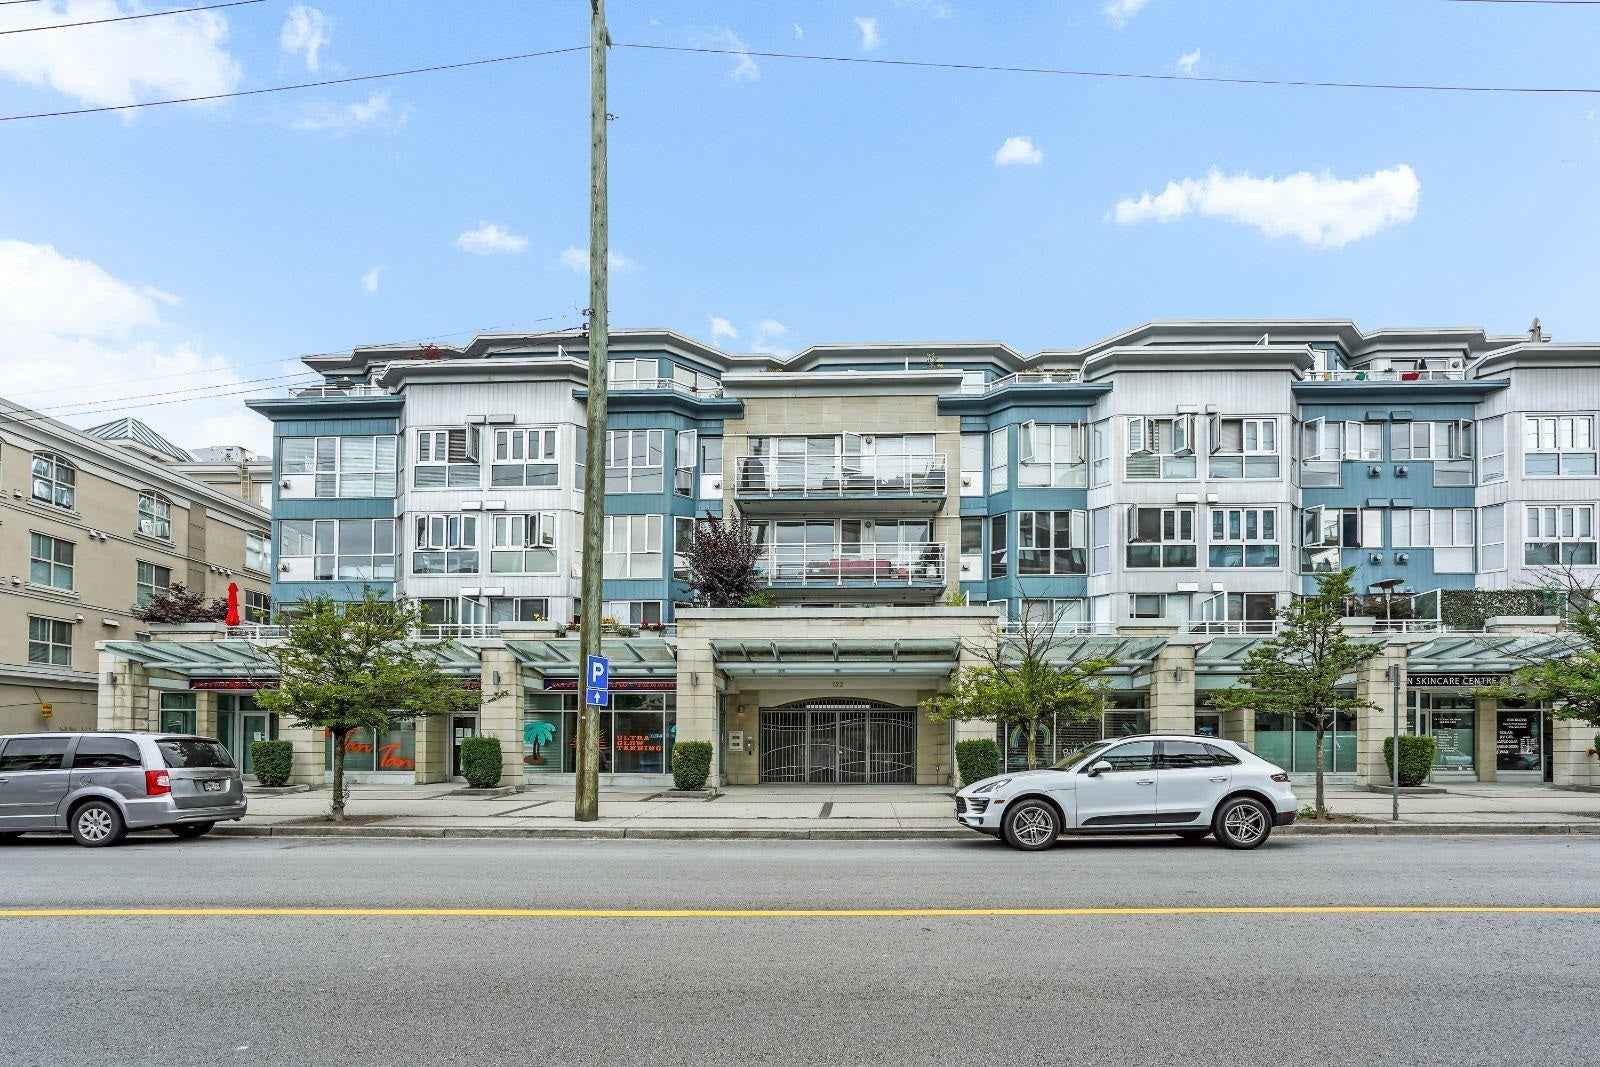 202 122 E 3RD STREET - Lower Lonsdale Apartment/Condo for sale, 2 Bedrooms (R2627892) - #1